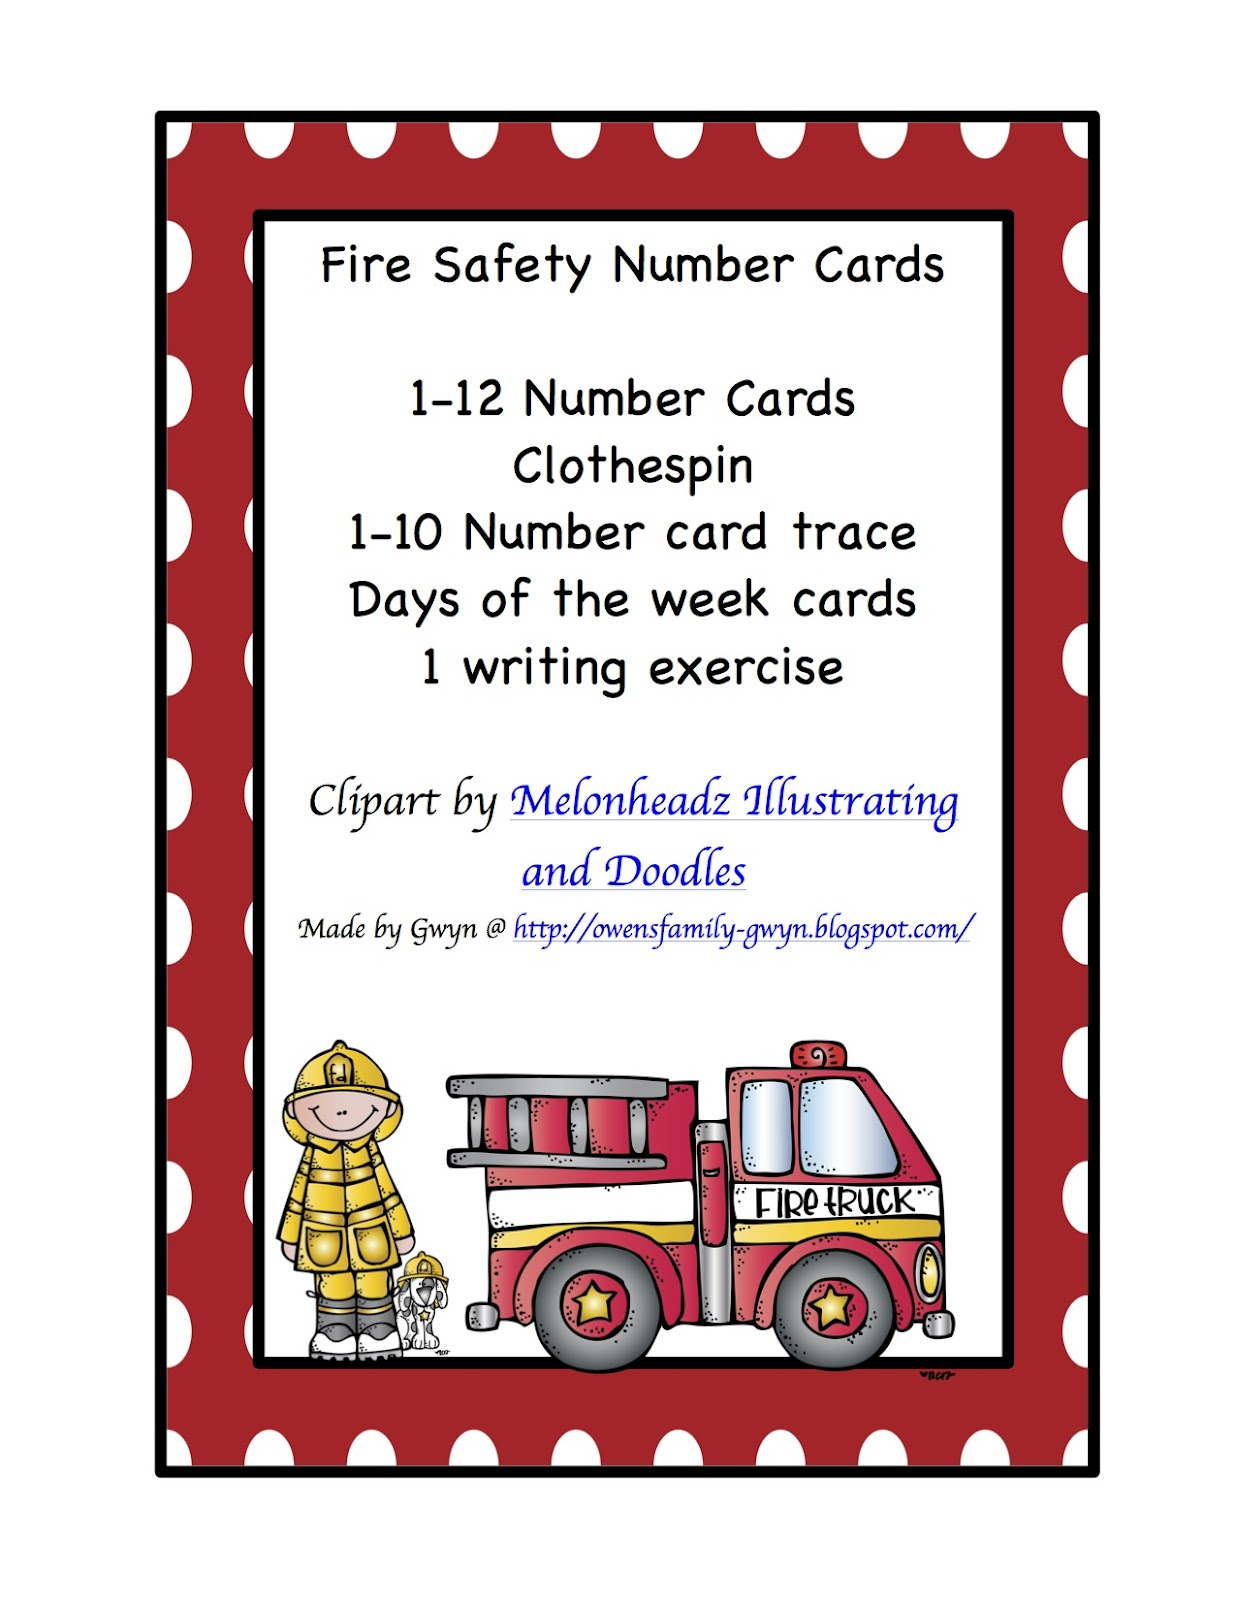 Fire Safety Worksheets Preschool http://owensfamily-gwyn.blogspot.com/2012/09/fire-safety-number-cards.html